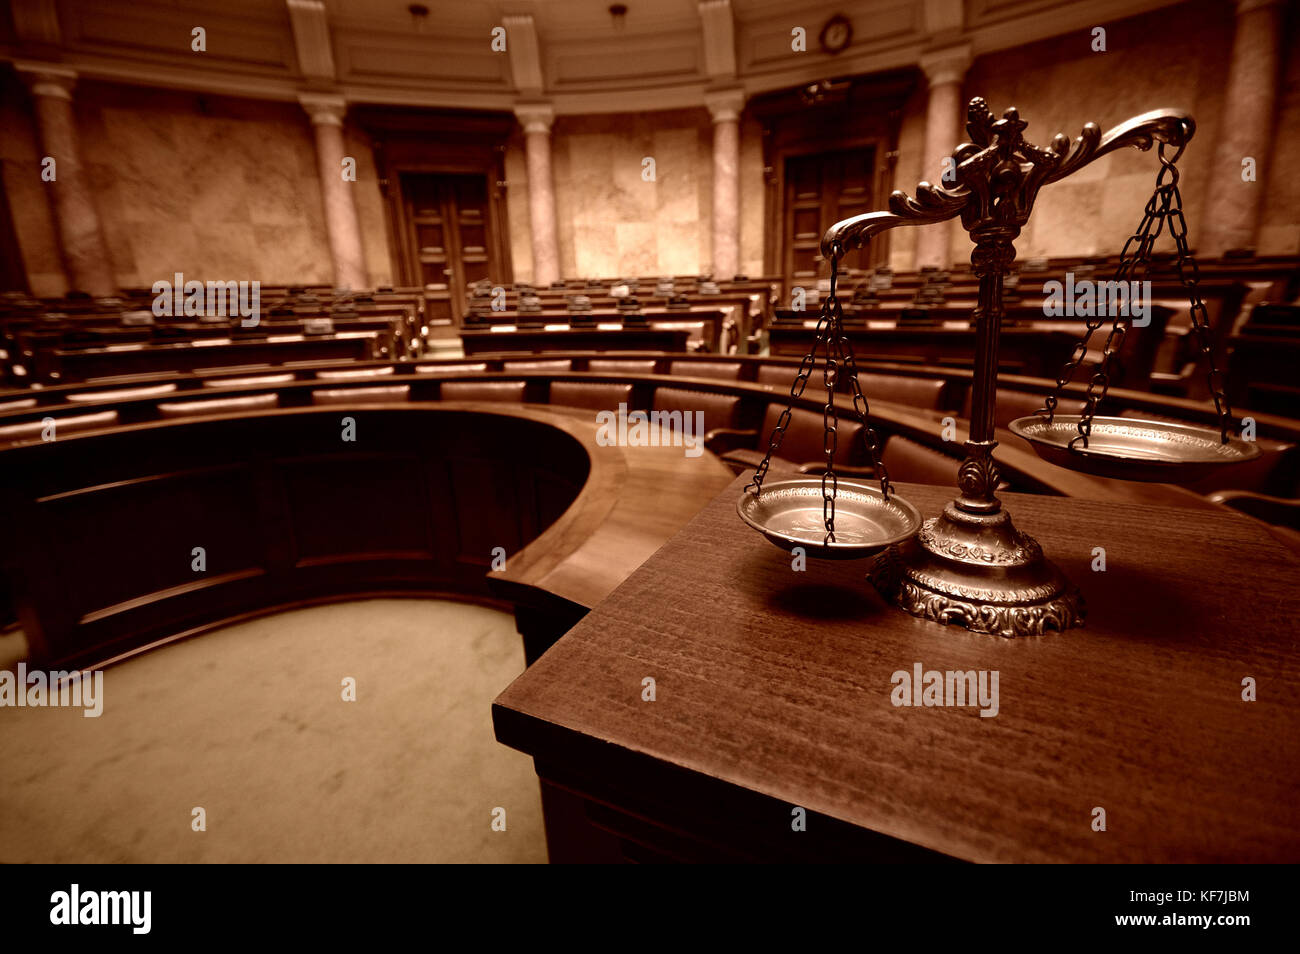 Symbol of law and justice in the empty courtroom, law and justice concept. - Stock Image